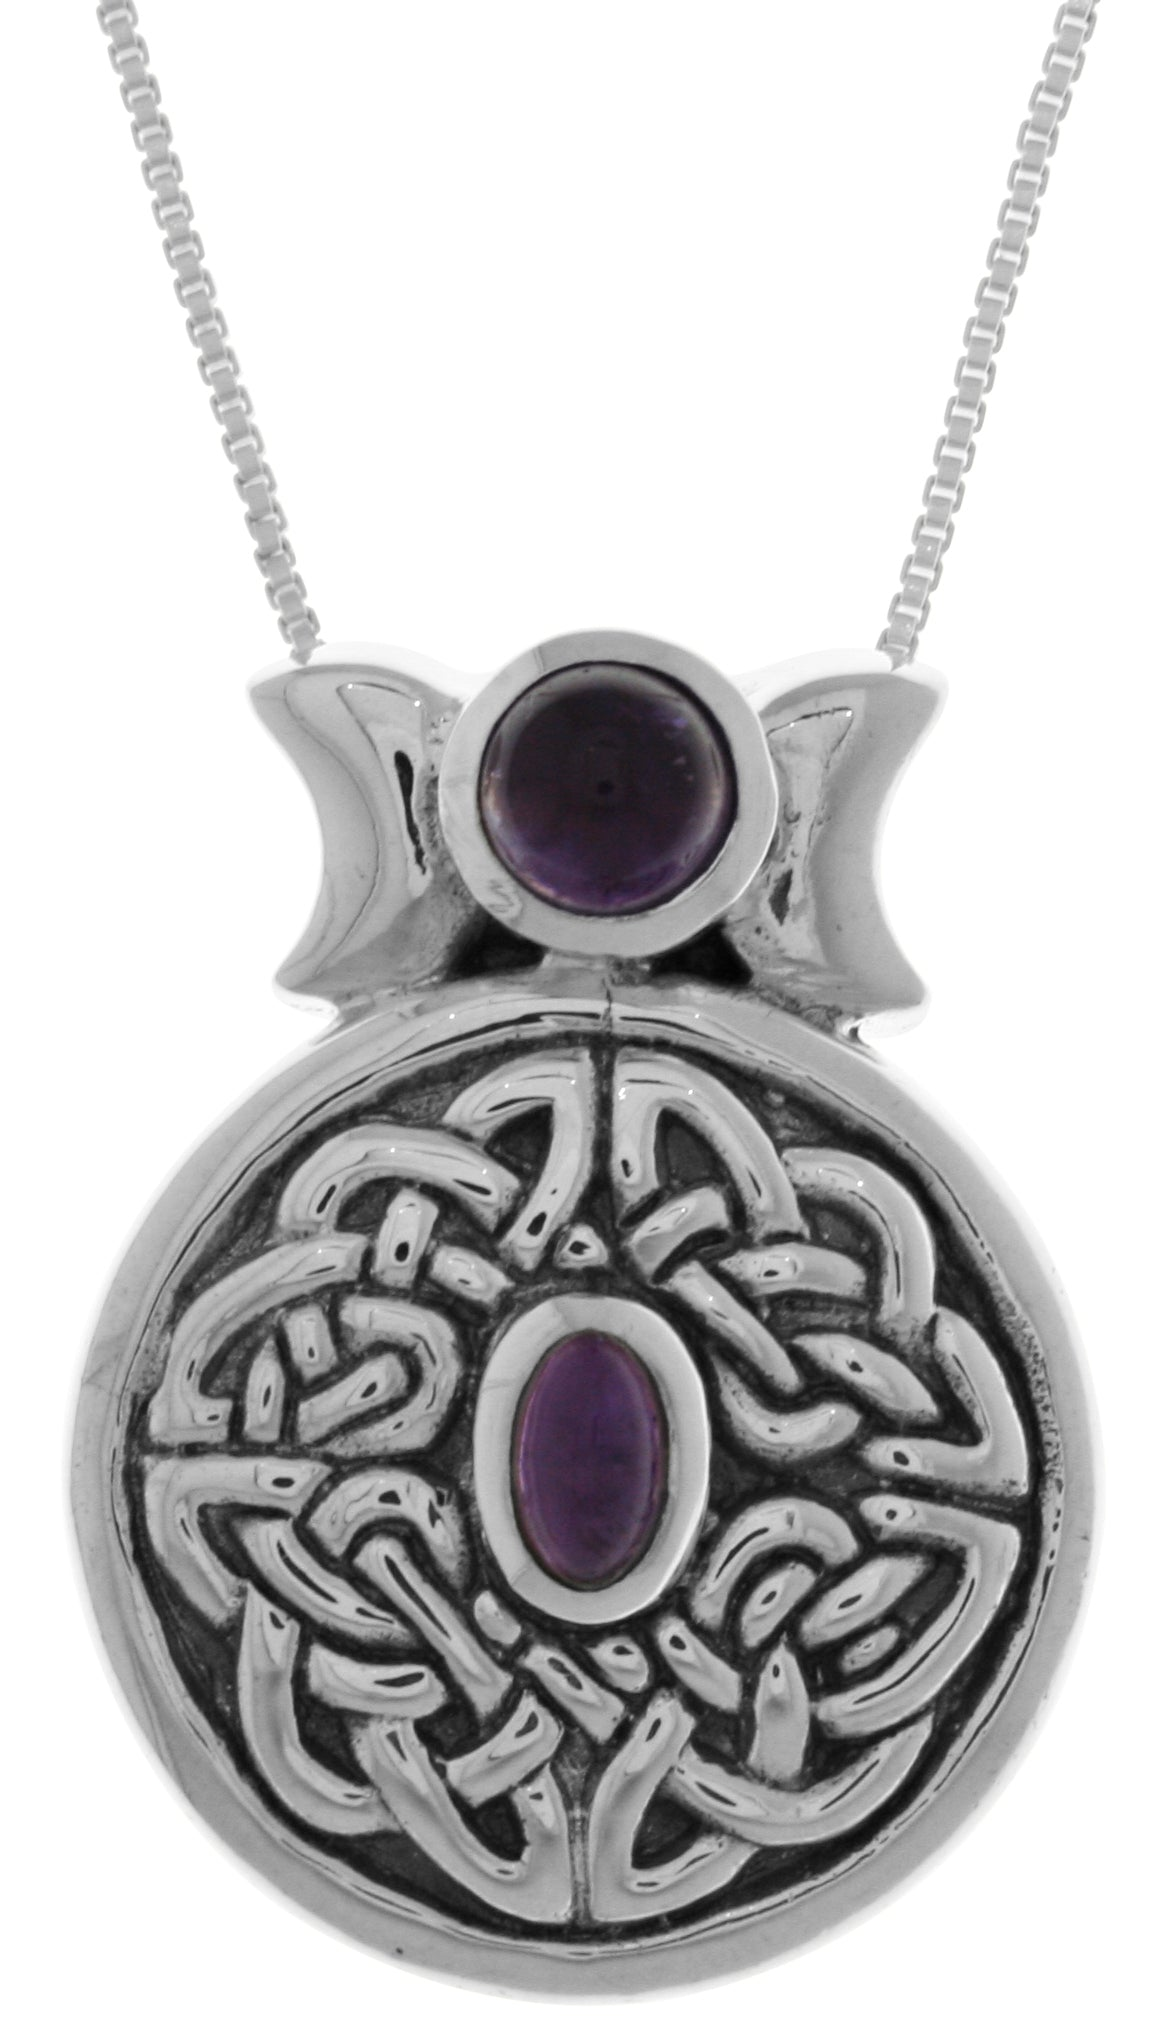 Jewelry trends sterling silver round celtic moon goddess pendant jewelry trends sterling silver round celtic moon goddess pendant with purple amethyst on 18 inch box chain necklace aloadofball Choice Image